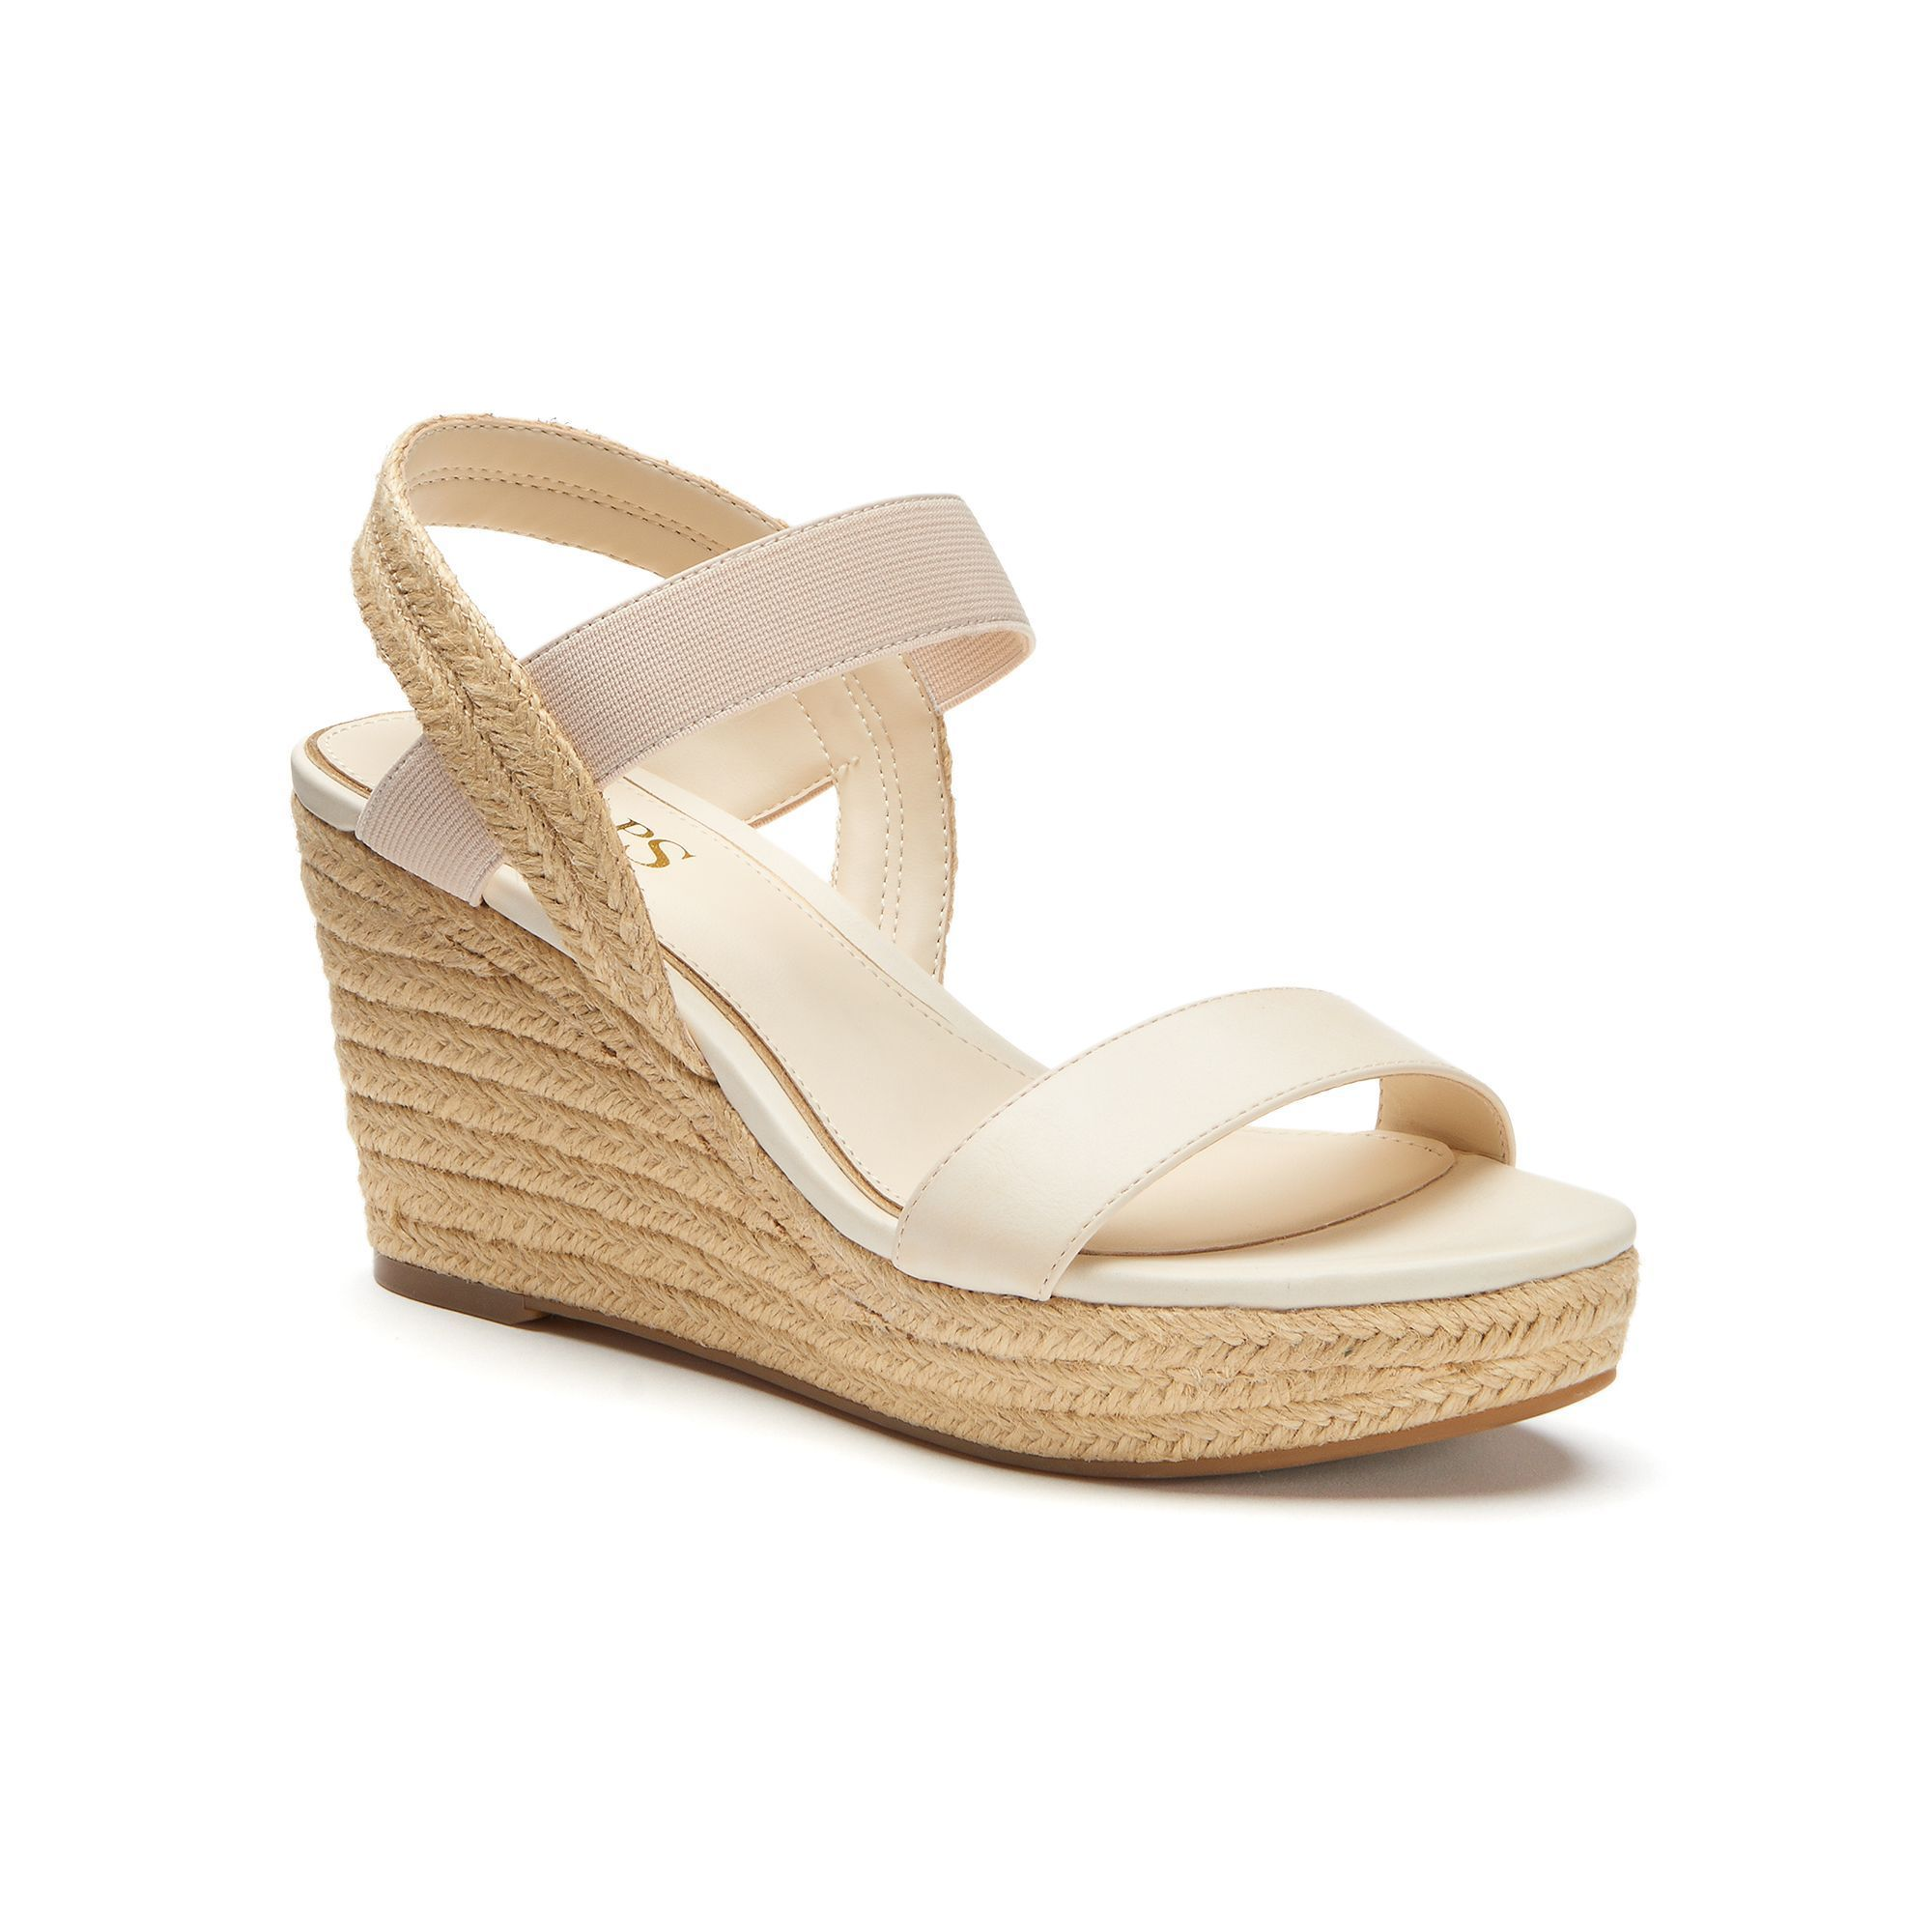 24e0c78a2171 Chaps Wensley Women s Espadrille Wedge Sandals